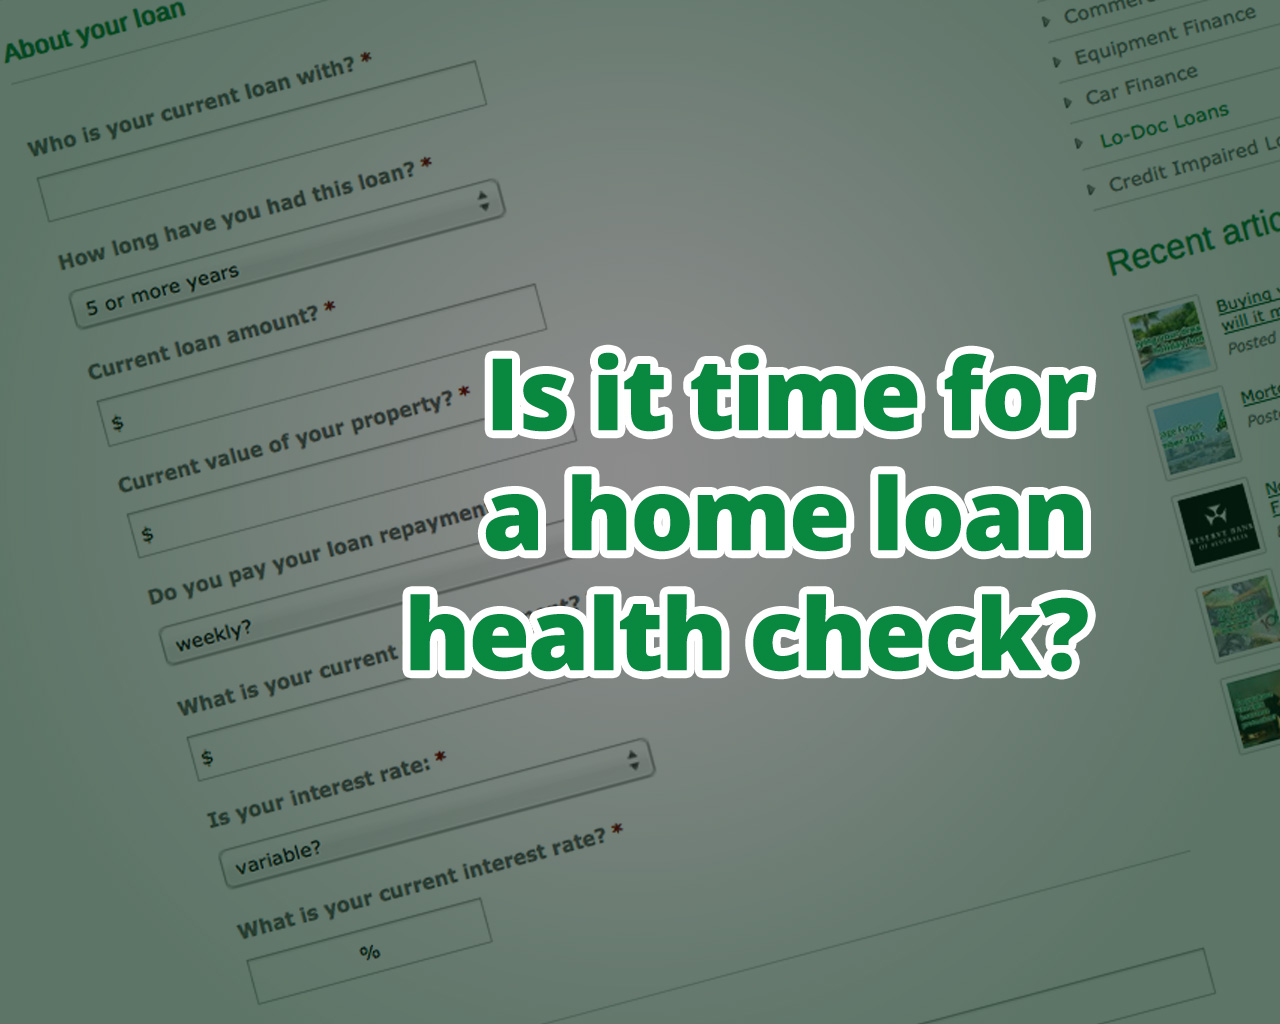 Is it time for a home loan health check?